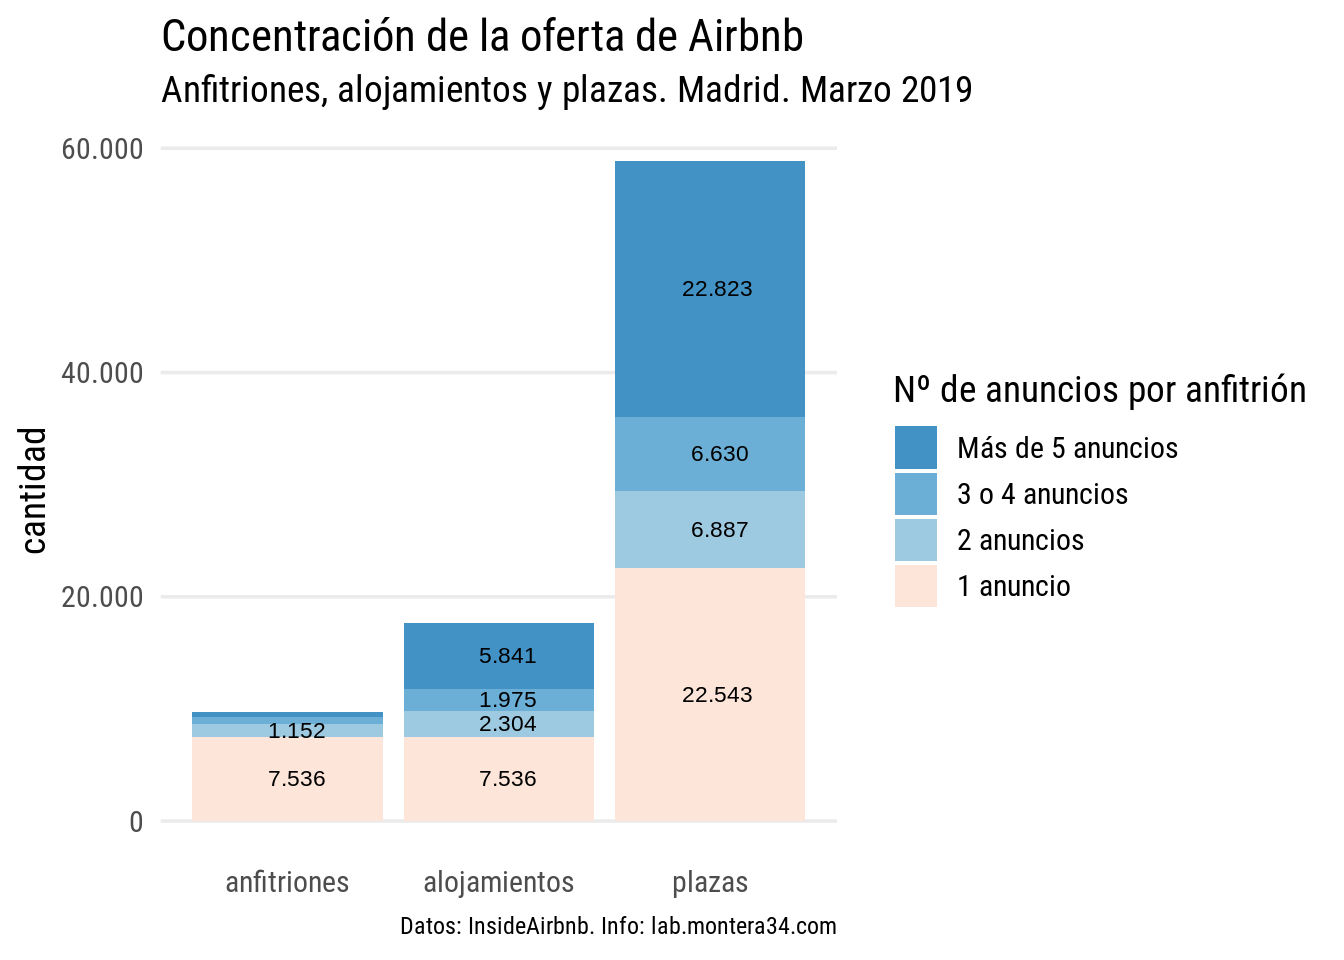 static/images/madrid/hosts/concentracion-oferta-airbnb-madrid-201903.png